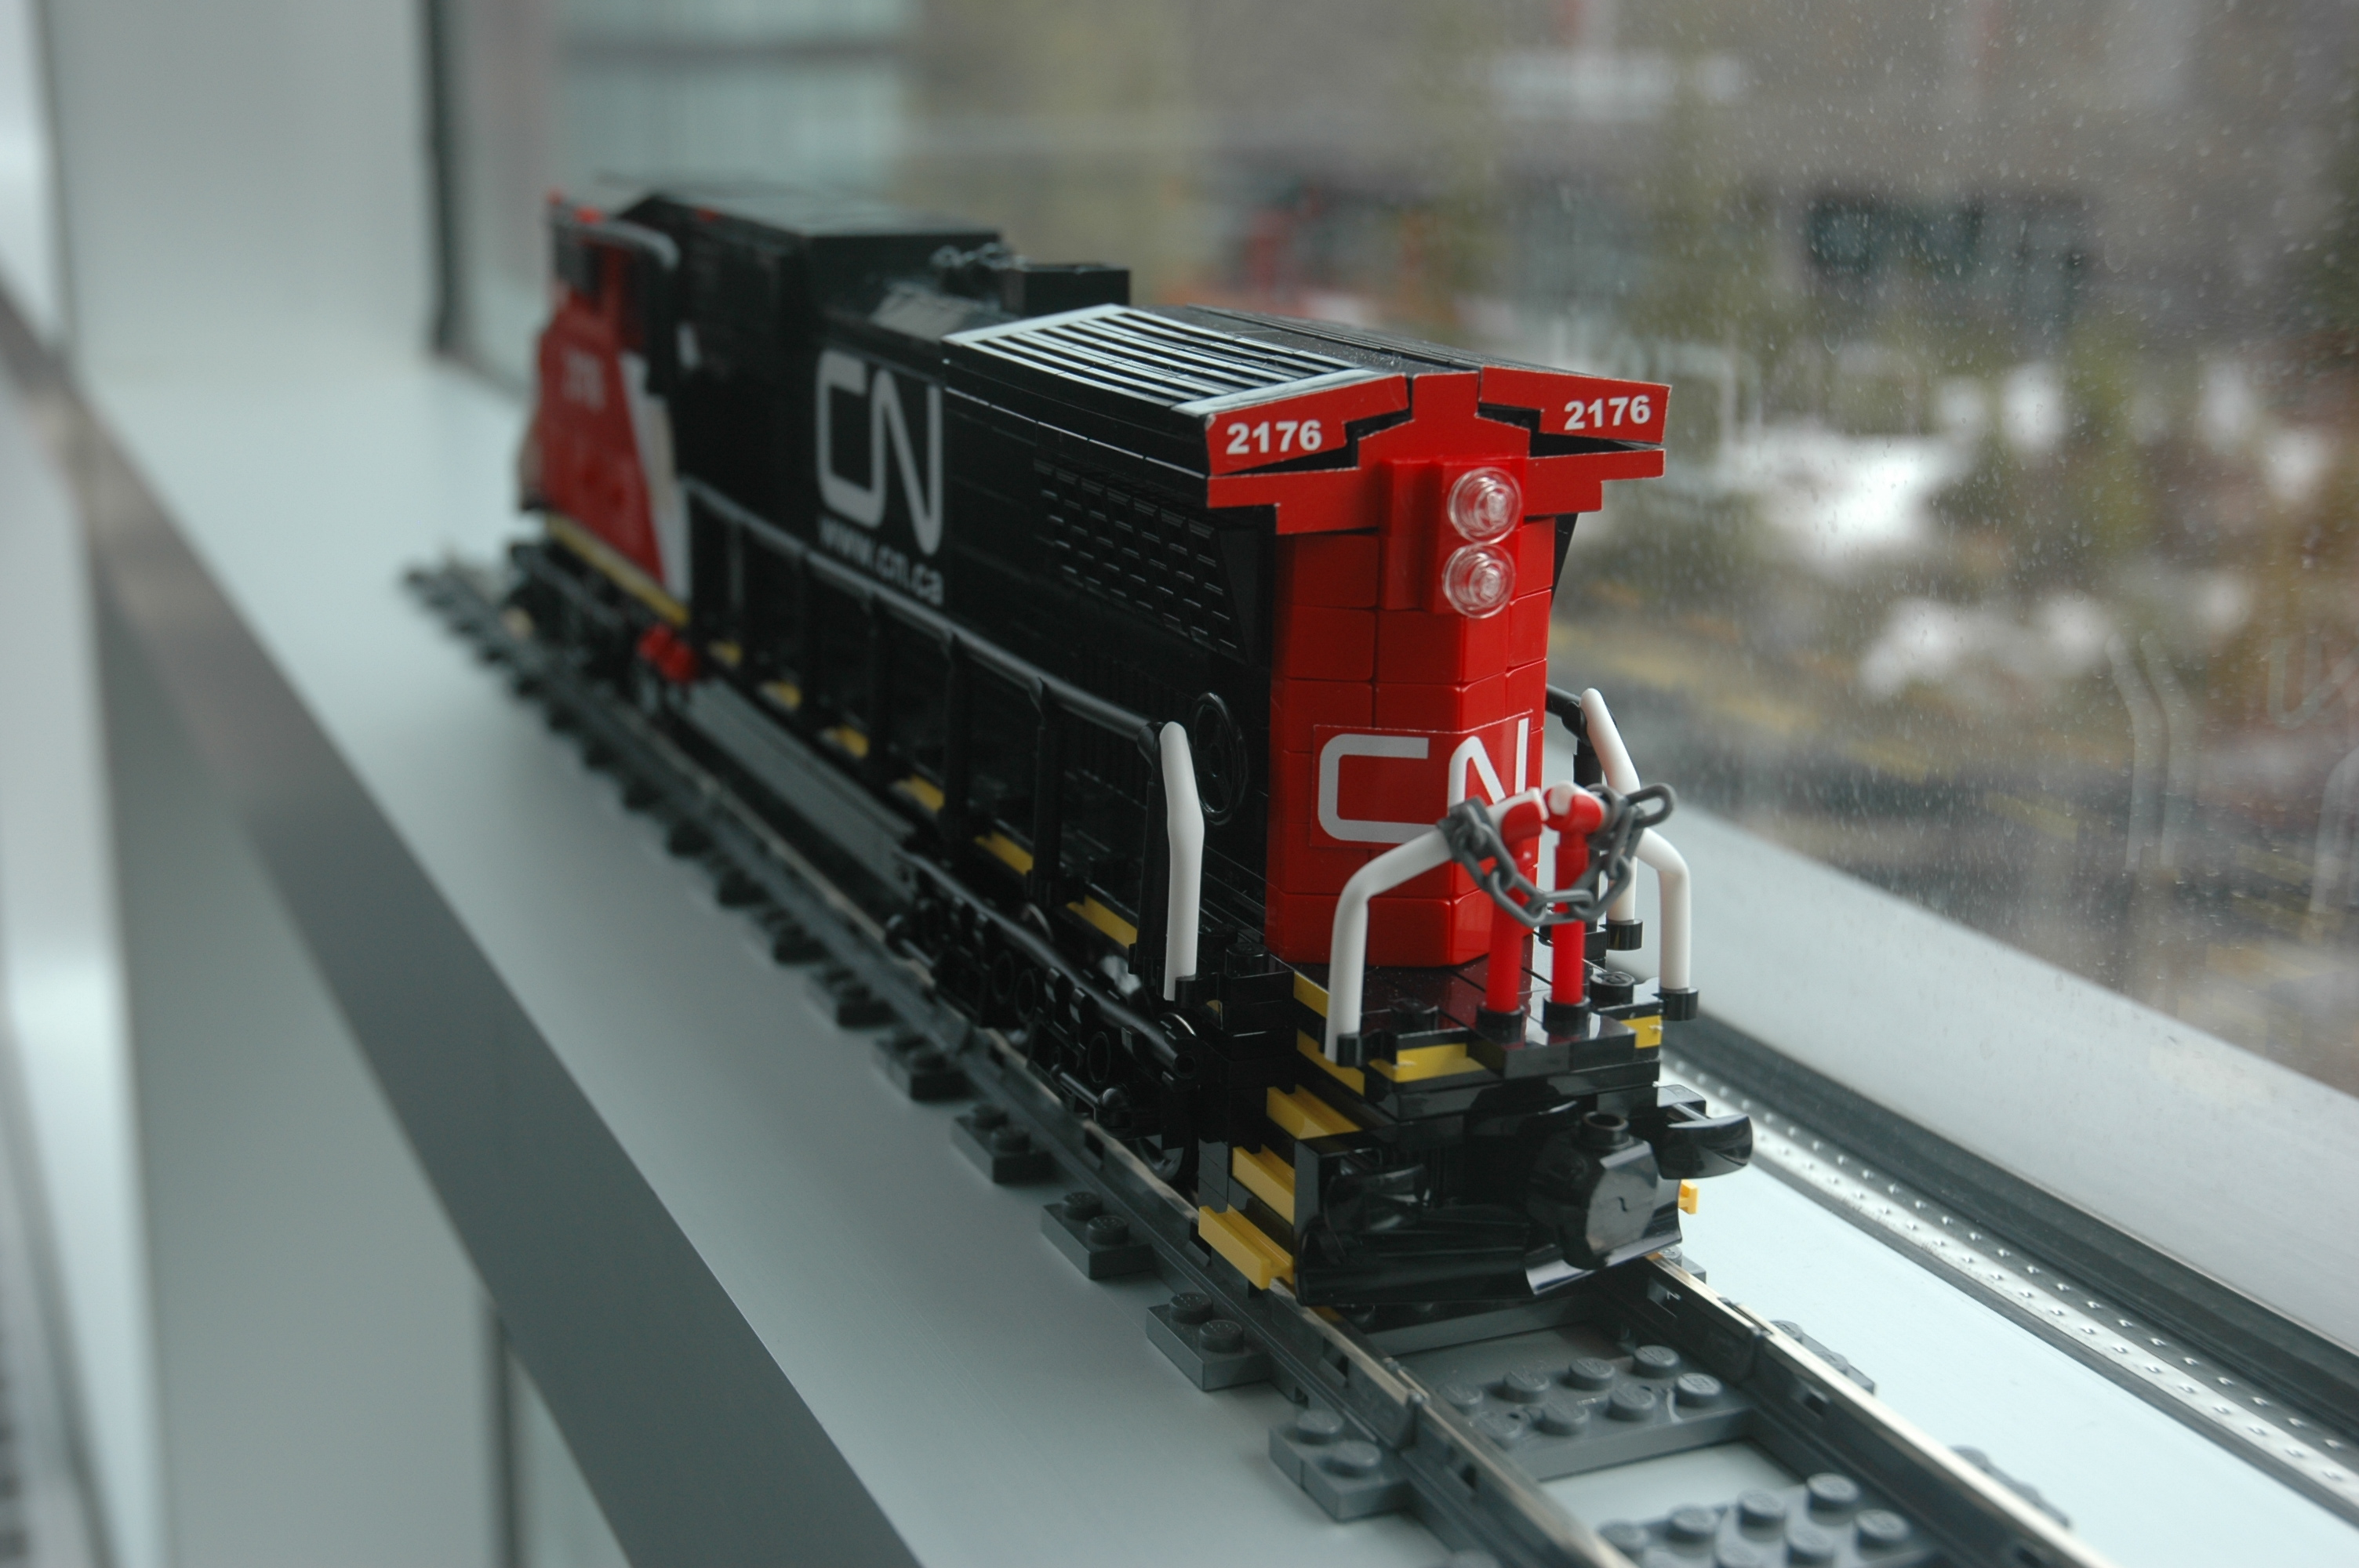 lego_cn_freight_engine_c40-8w_dash_8_rear1.jpg